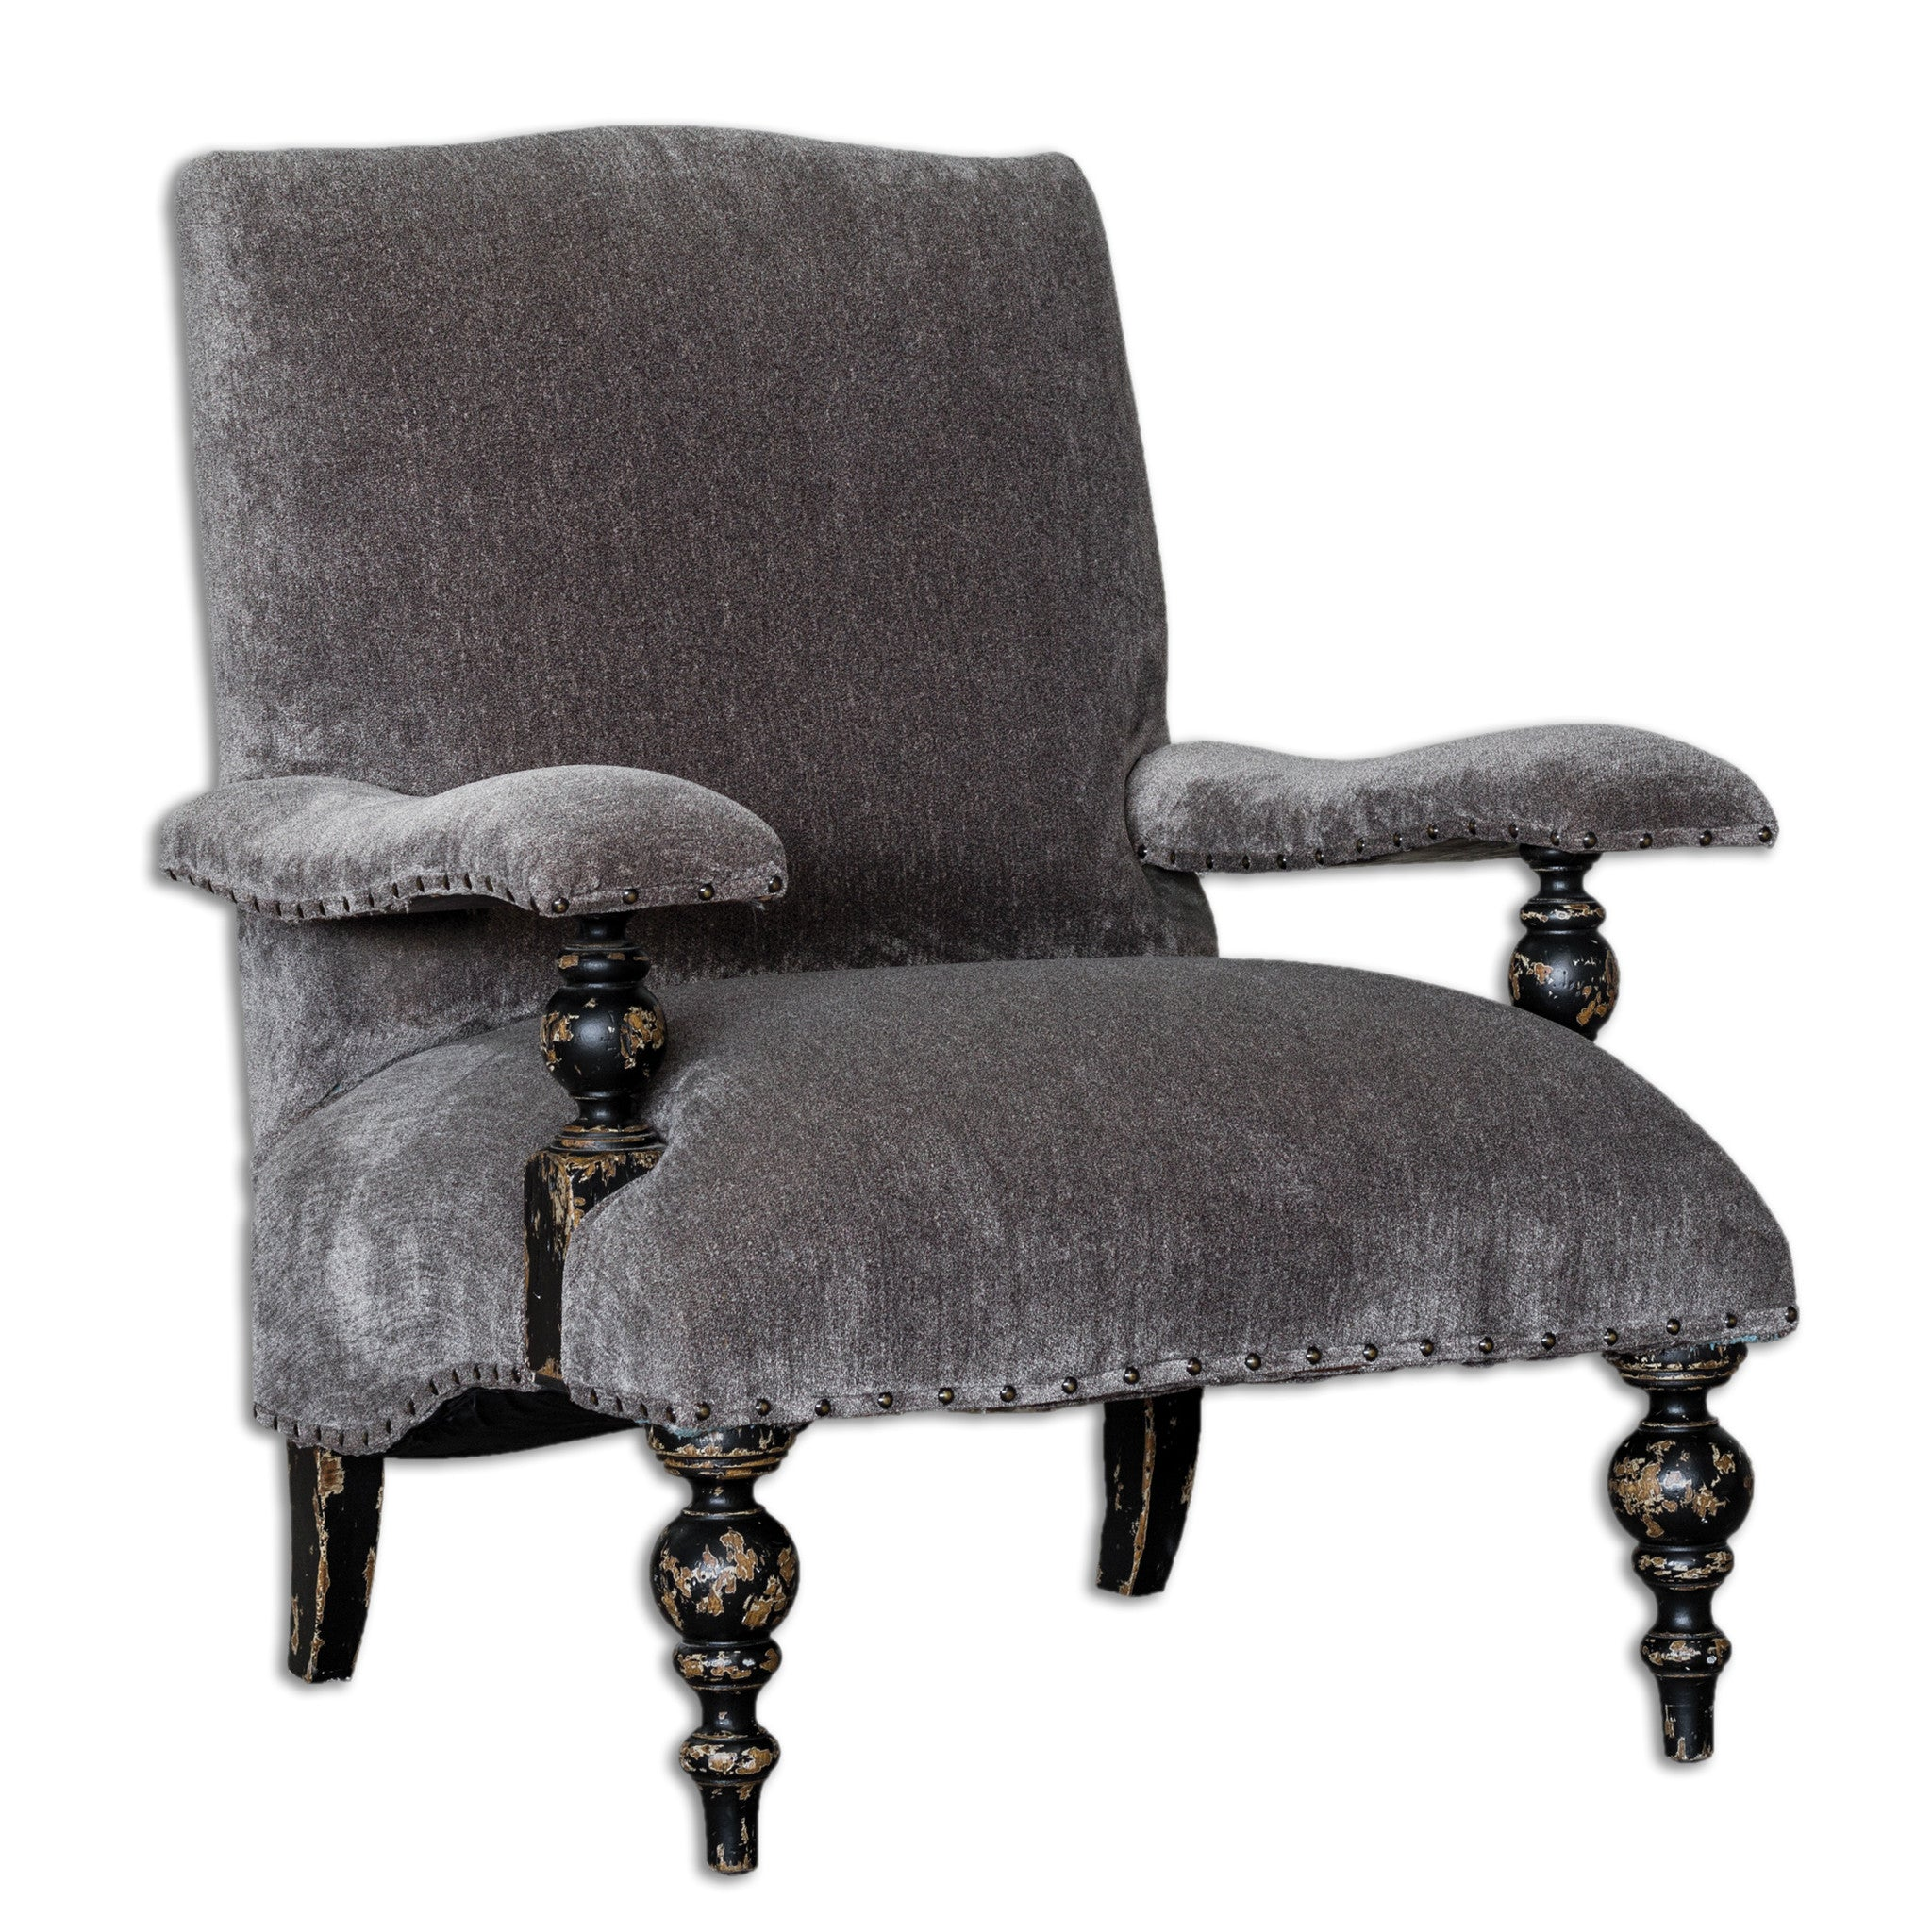 Gray Chenille armchair with dark distressed wood legs and nickel nailheads along the bottom of the seat